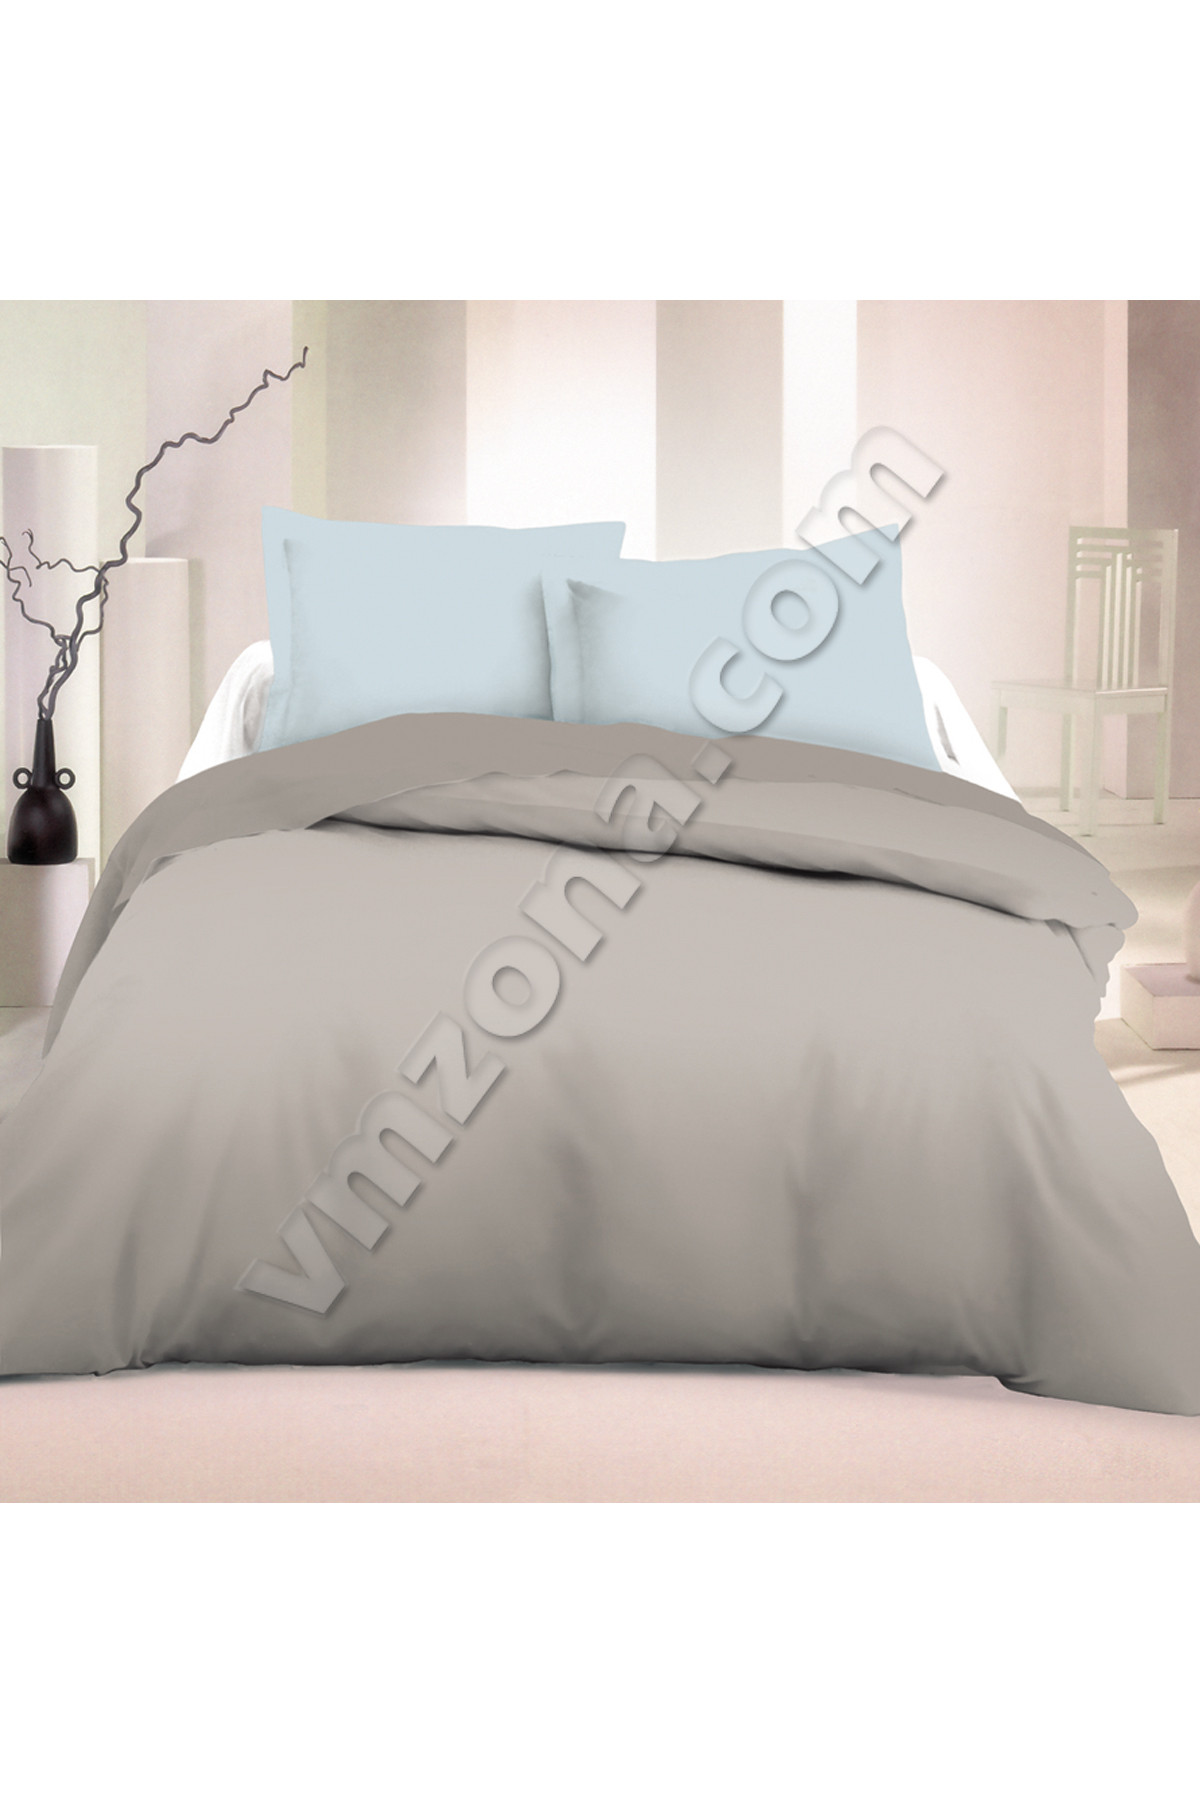 bedroom set blue gray